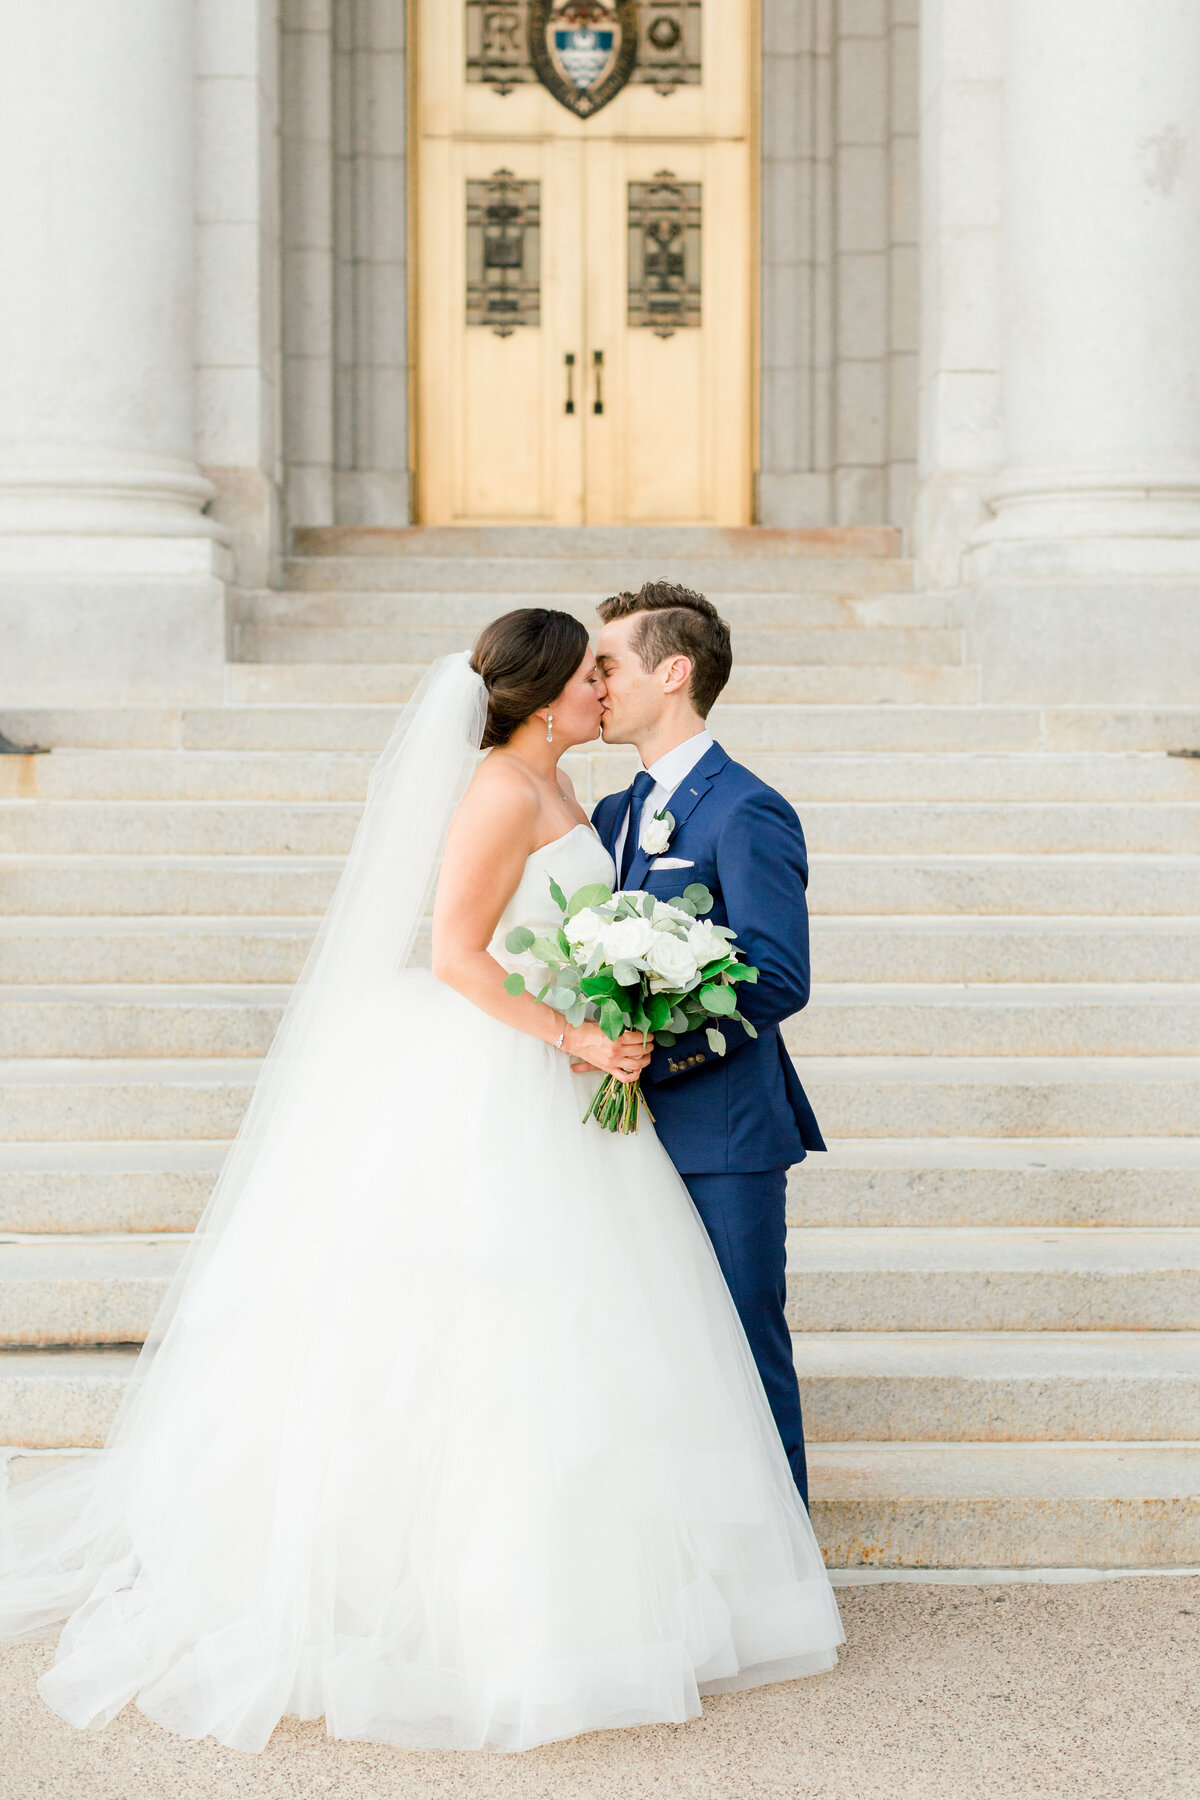 lindsey-taylor-photography-minneapolis-st-peters-basilica-wedding-photographer34